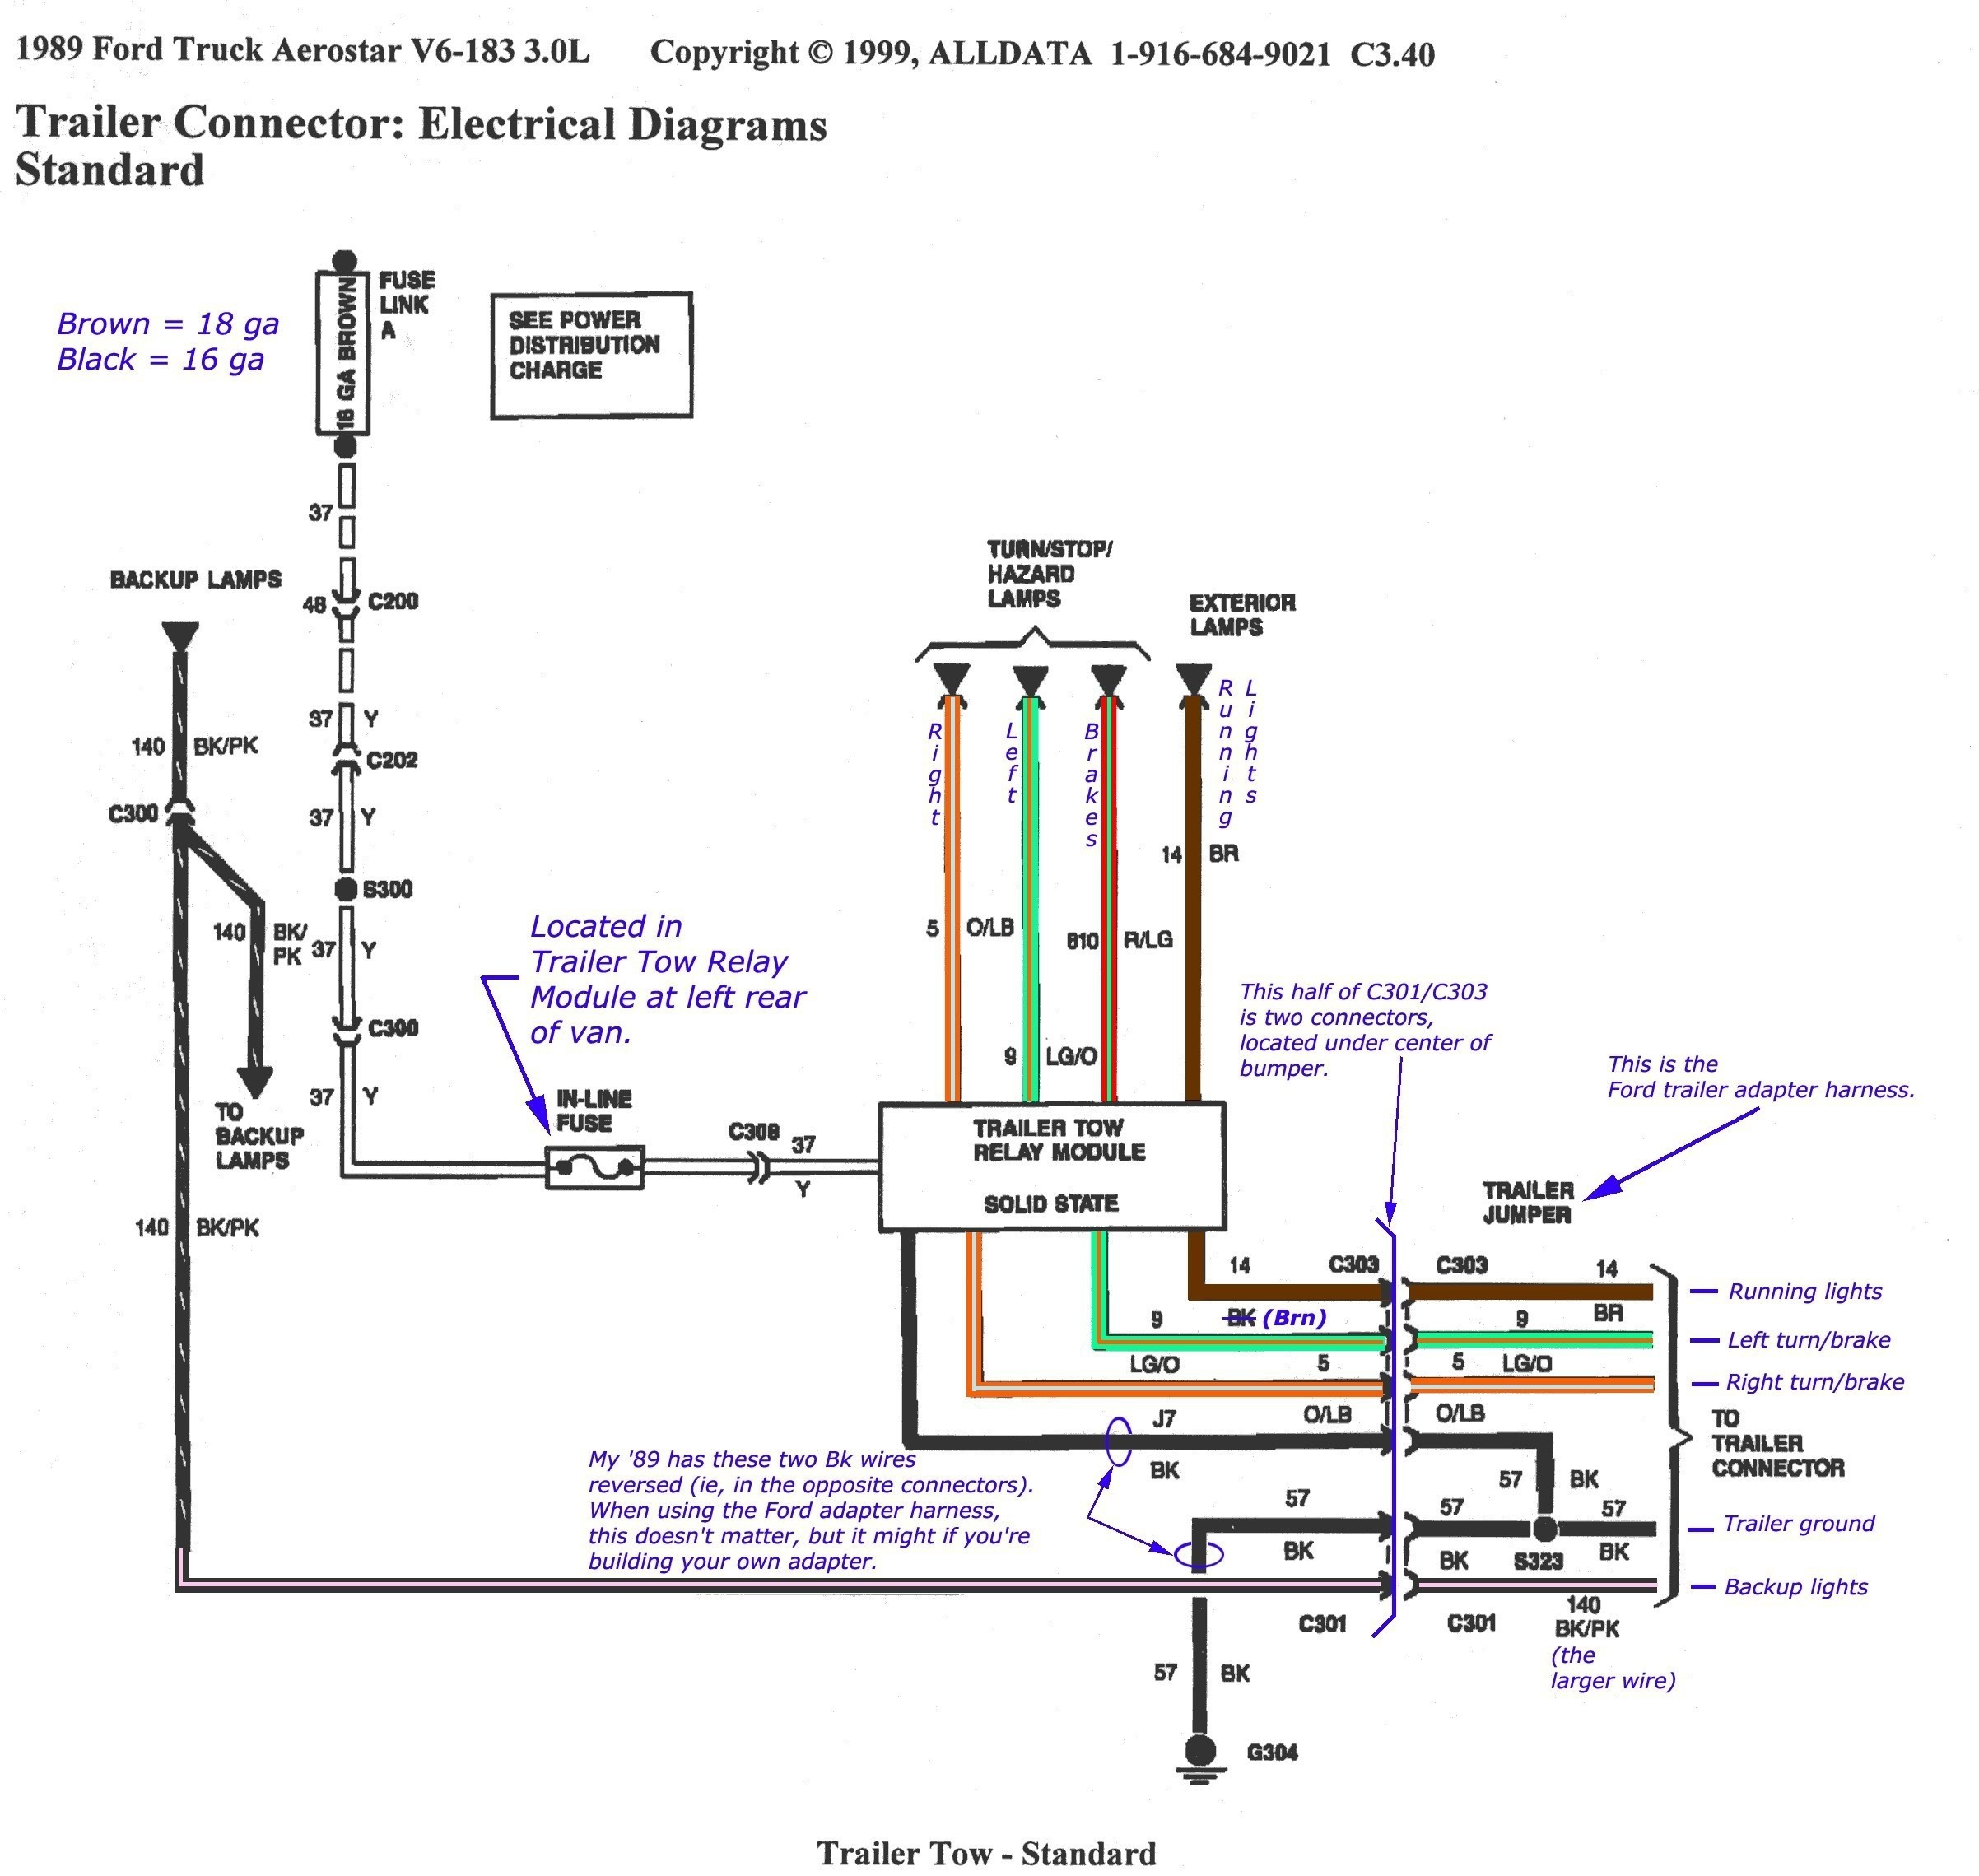 Dimarzio X2n Wiring Diagram Experience Of Schematics Free For You U2022 Rh One Ineedmorespace Co Paf